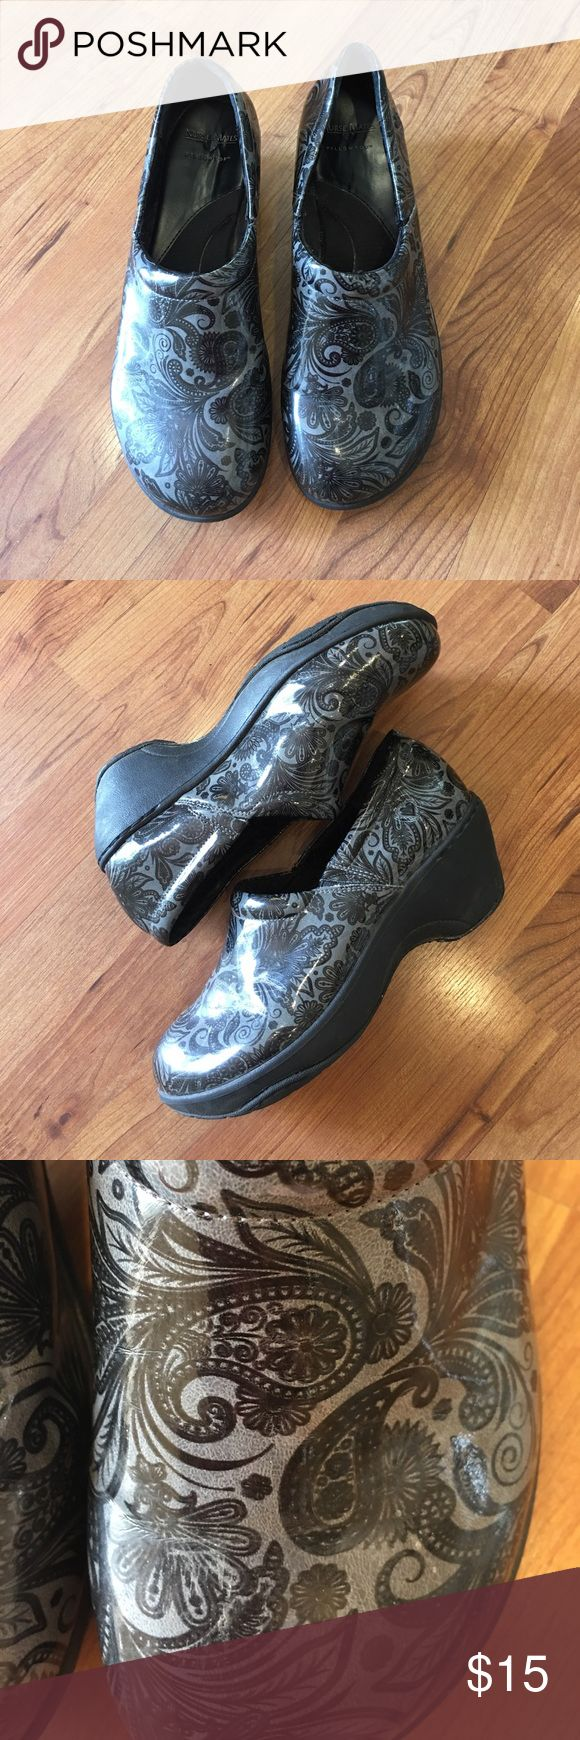 NURSE MATES SHOES SIZE 9. Nurse Mate Shoes. Great condition only worn a few times, bought  them and feel like they are a 9 1/2 size.I were a 10 now standing on you feet these have a great arch. Nurse Mates Shoes Mules & Clogs